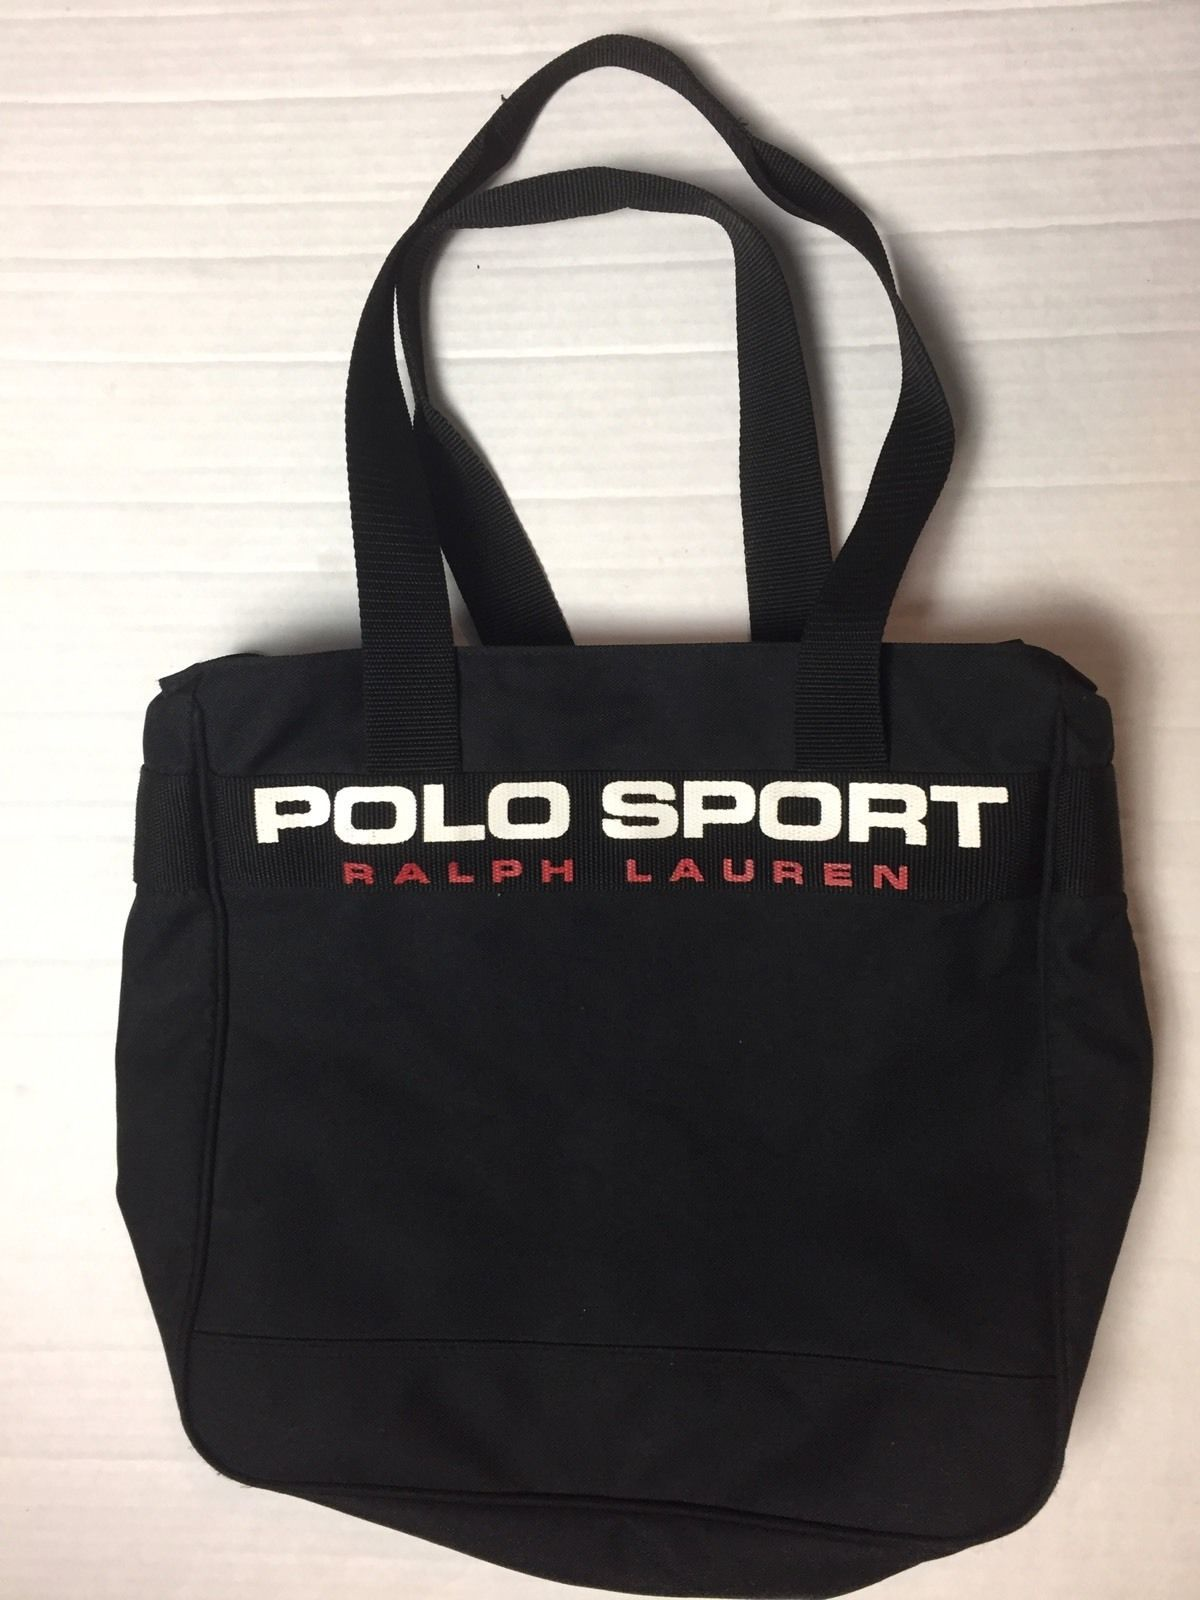 862f46f929 POLO SPORT Ralph Lauren Vintage new Large Spell out Canvas Tote Zipper Bag  MINT